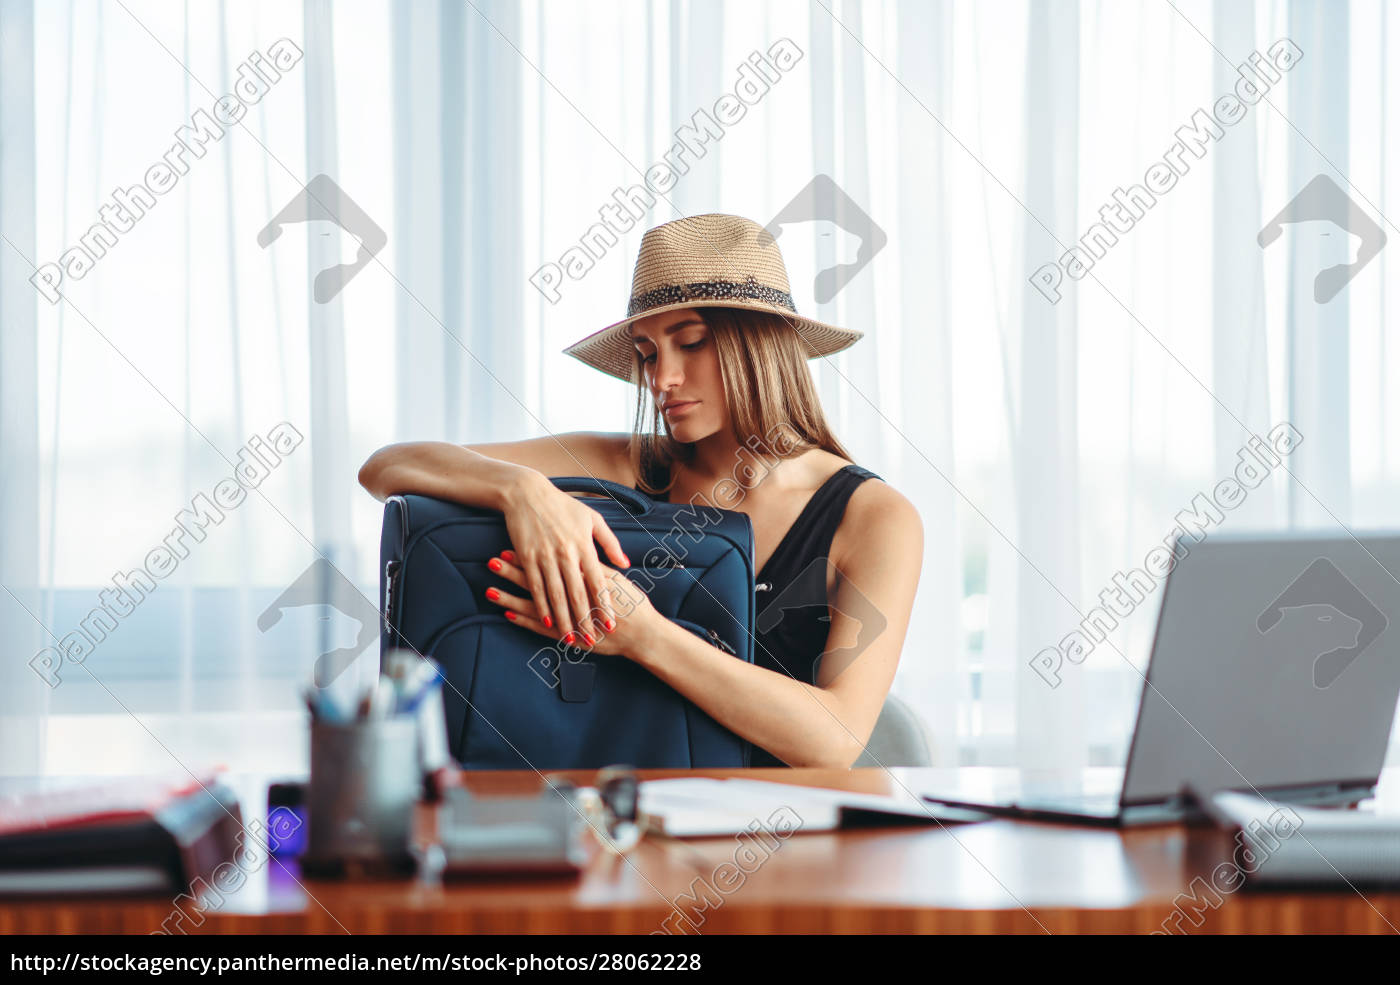 woman, with, suitcase, in, office, dreams - 28062228